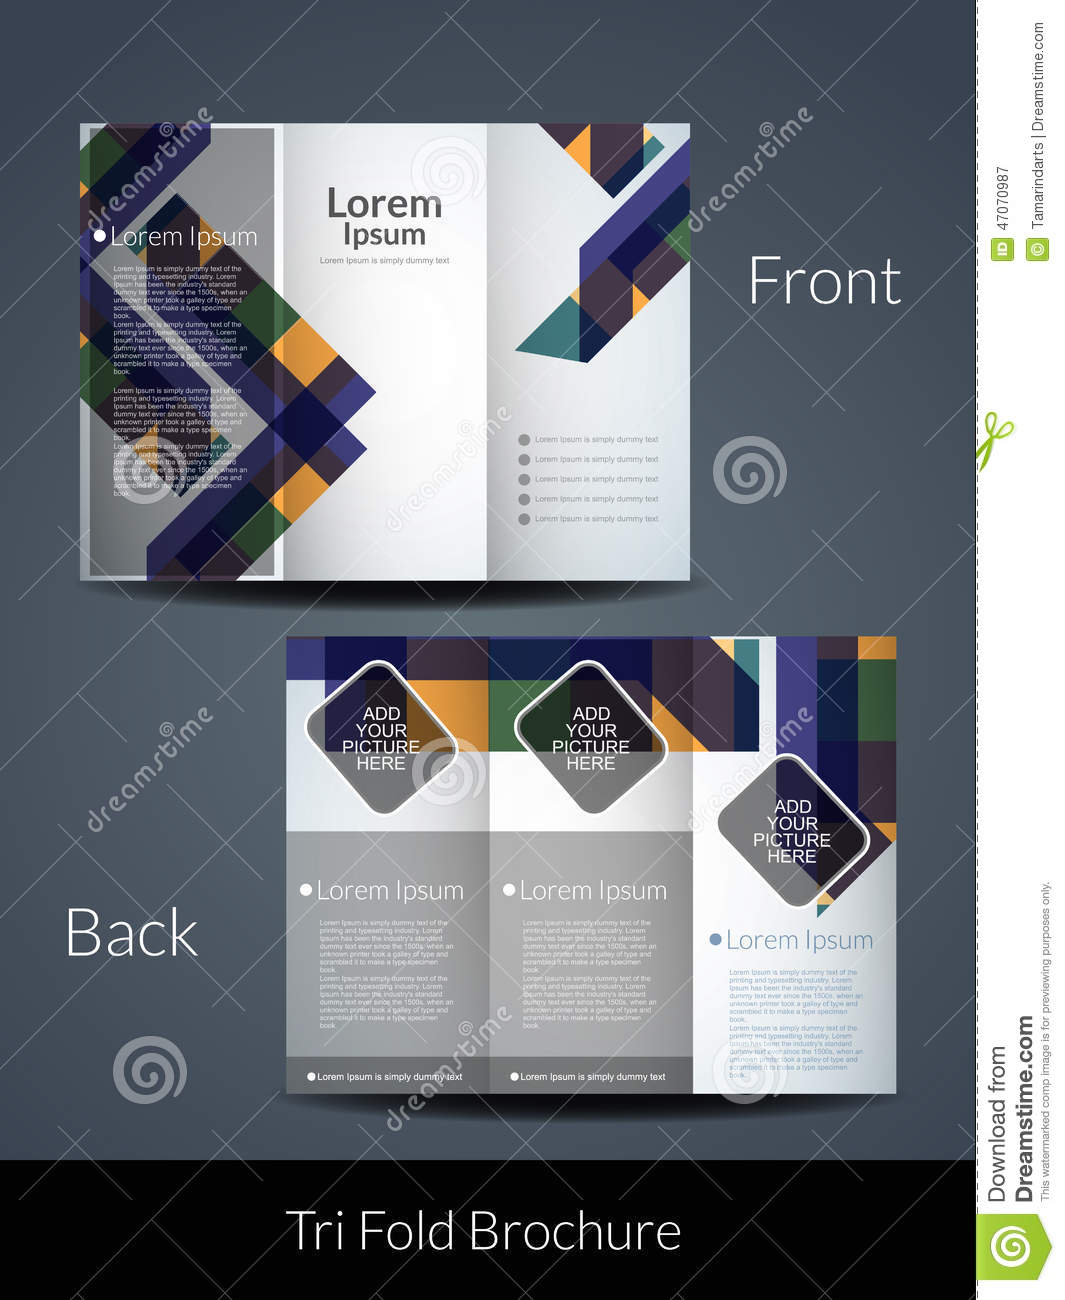 tri fold brochure design template stock vector illustration of